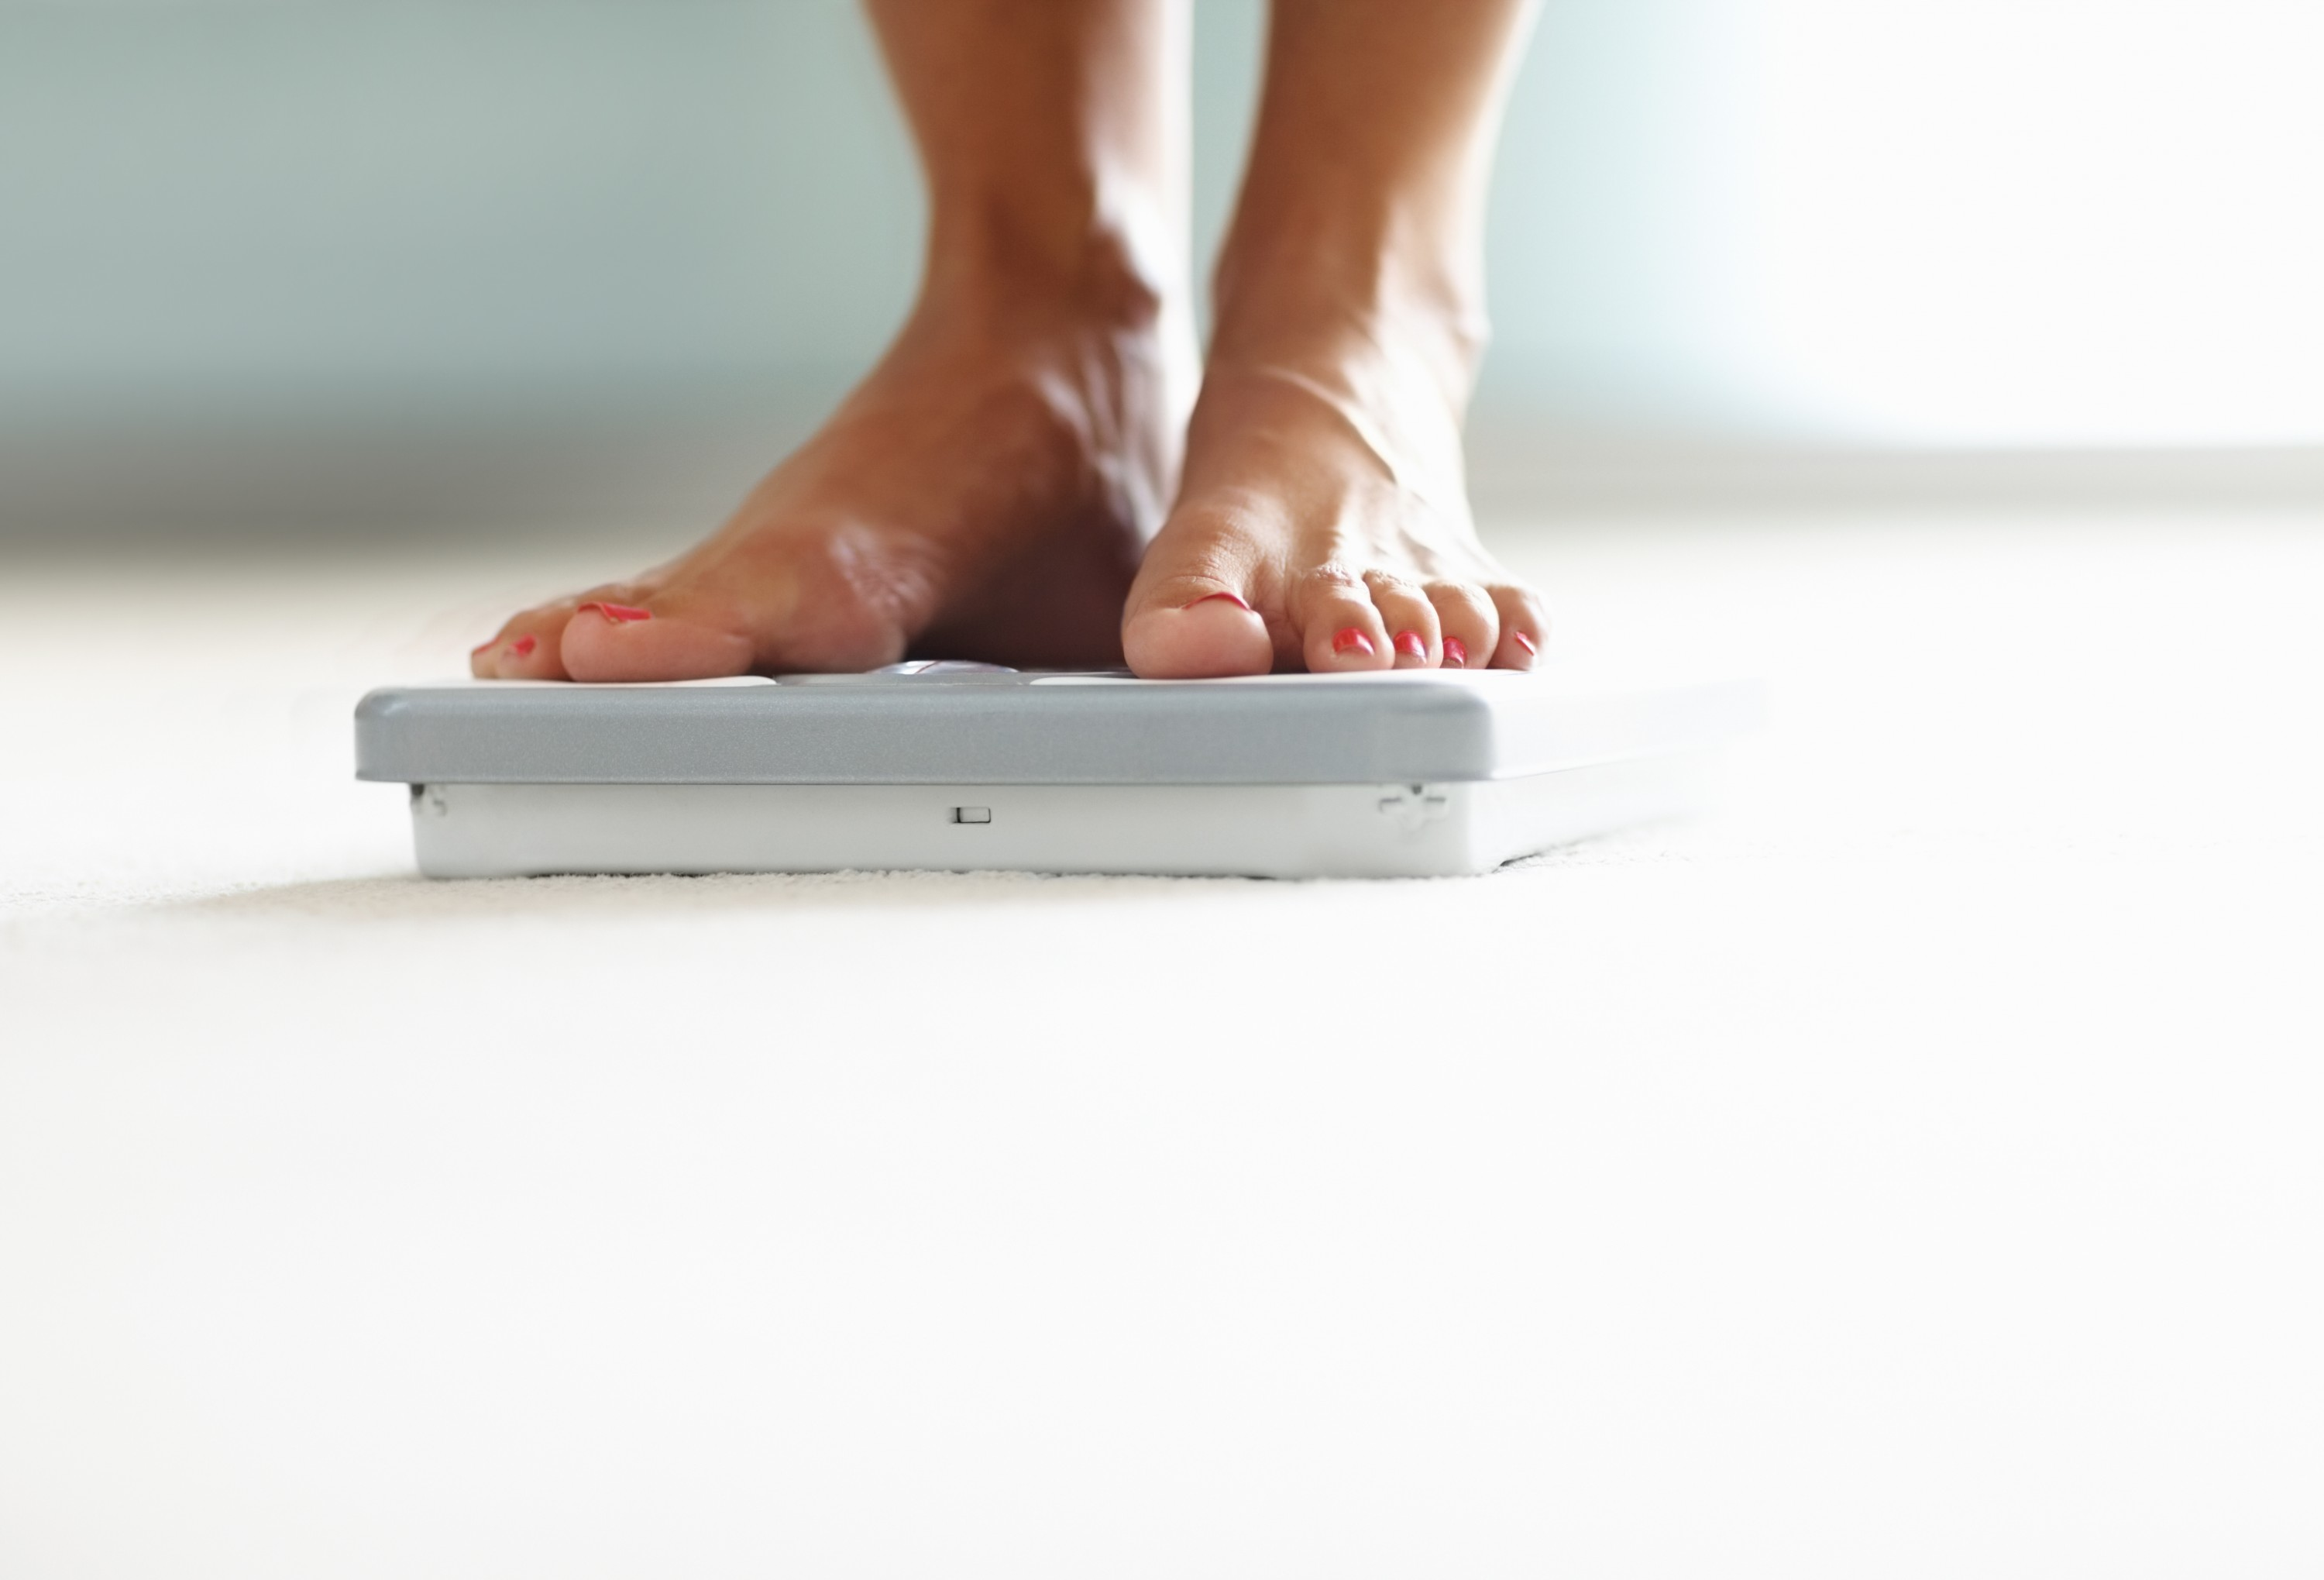 Picture detail of a person who ist standing on a scale.